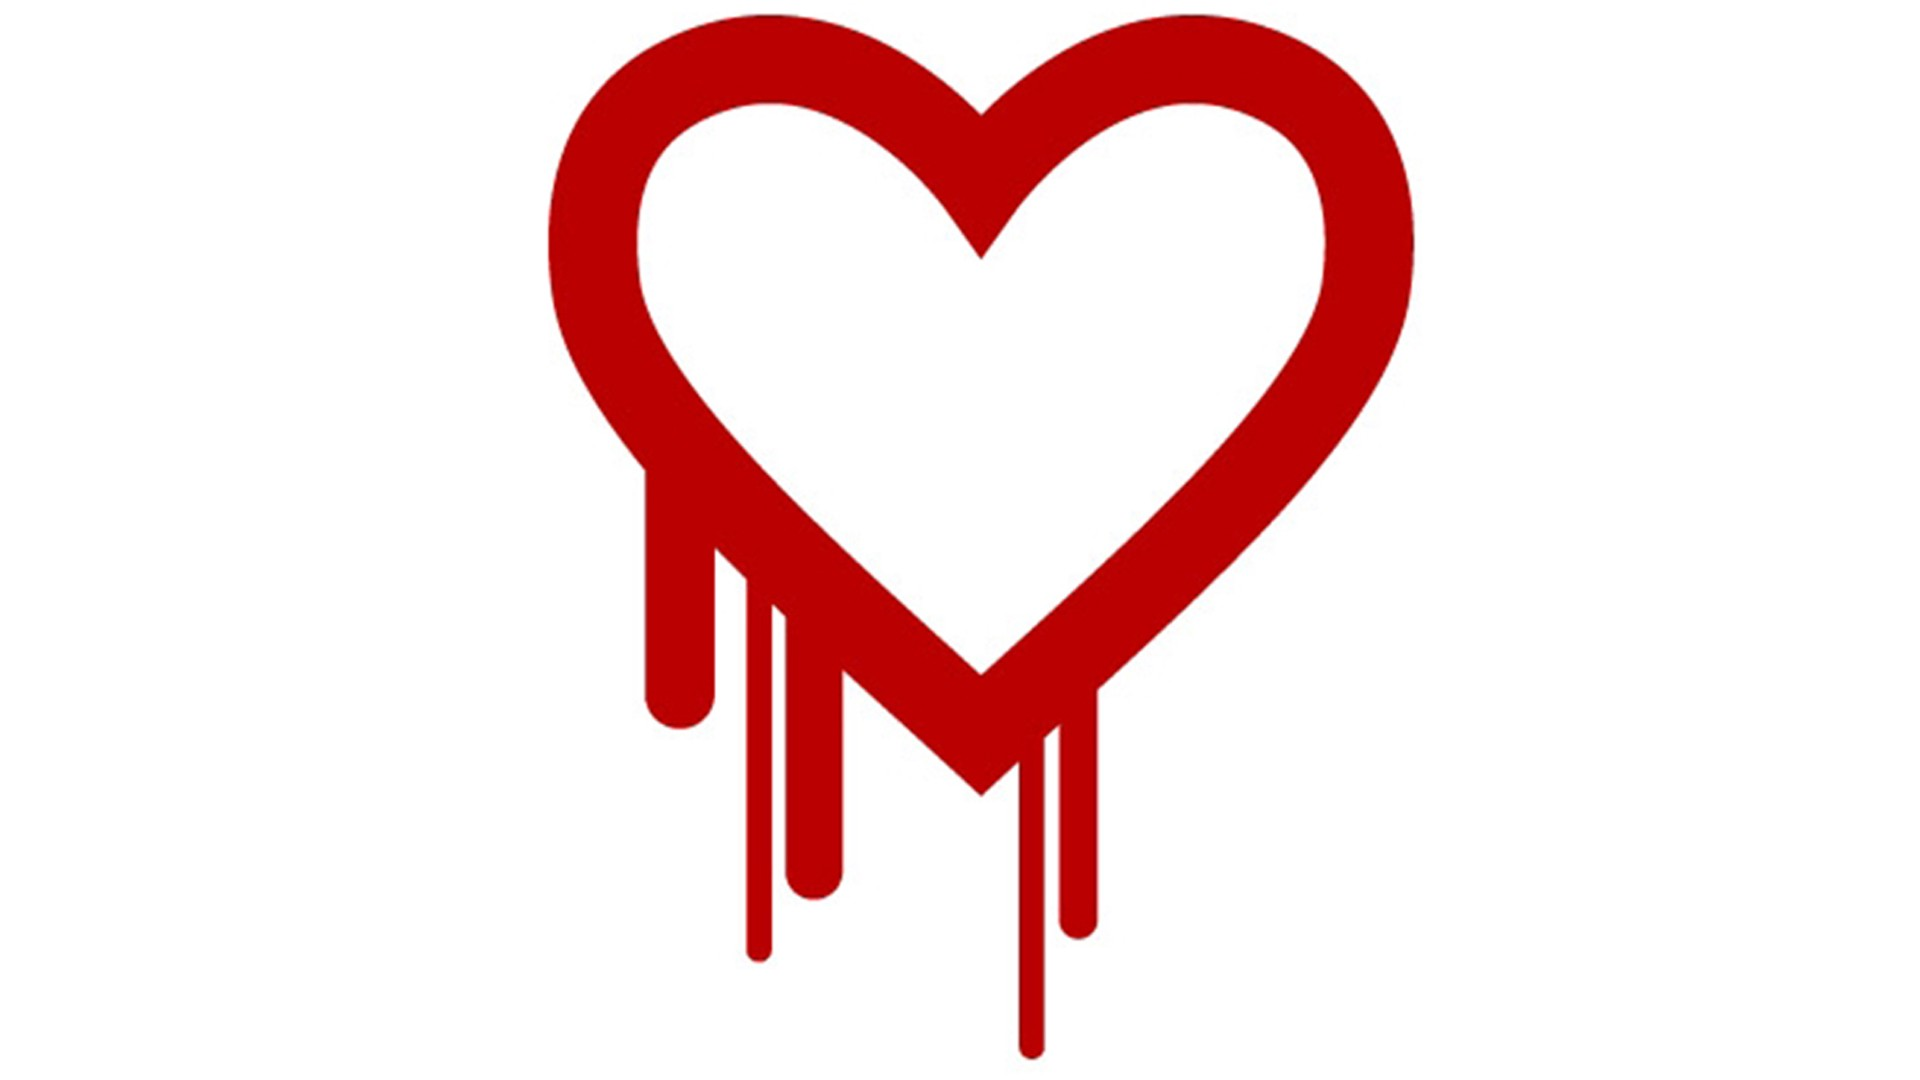 200,000 websites still affected by three year old security weakness (Heartbleed)